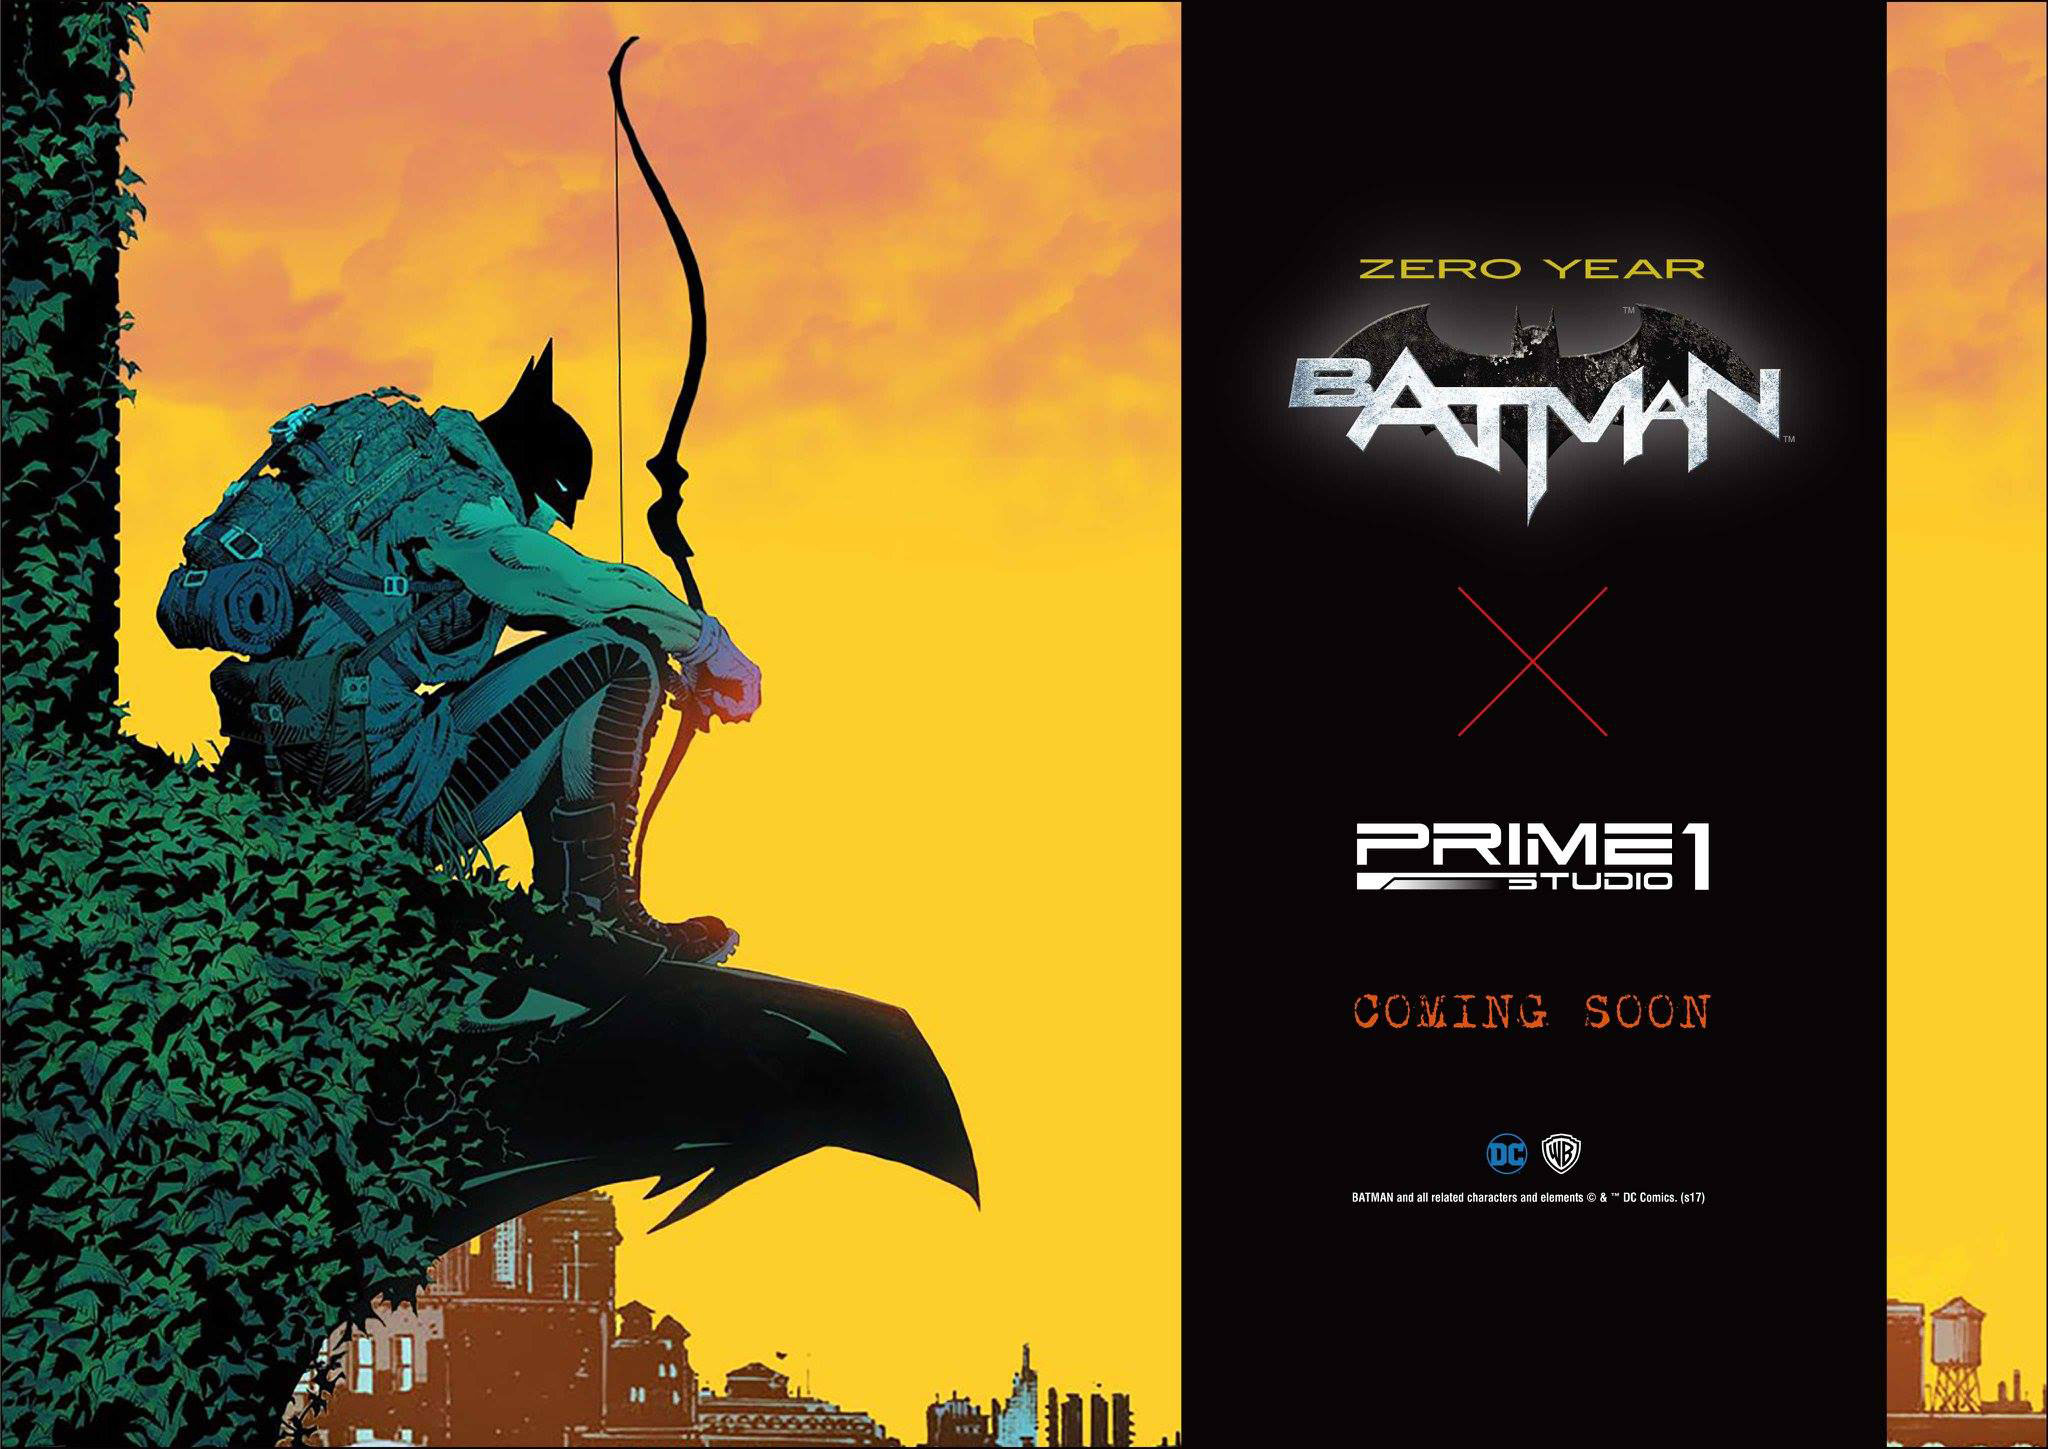 prime-1-studio-zero-year-batman-statues-preview